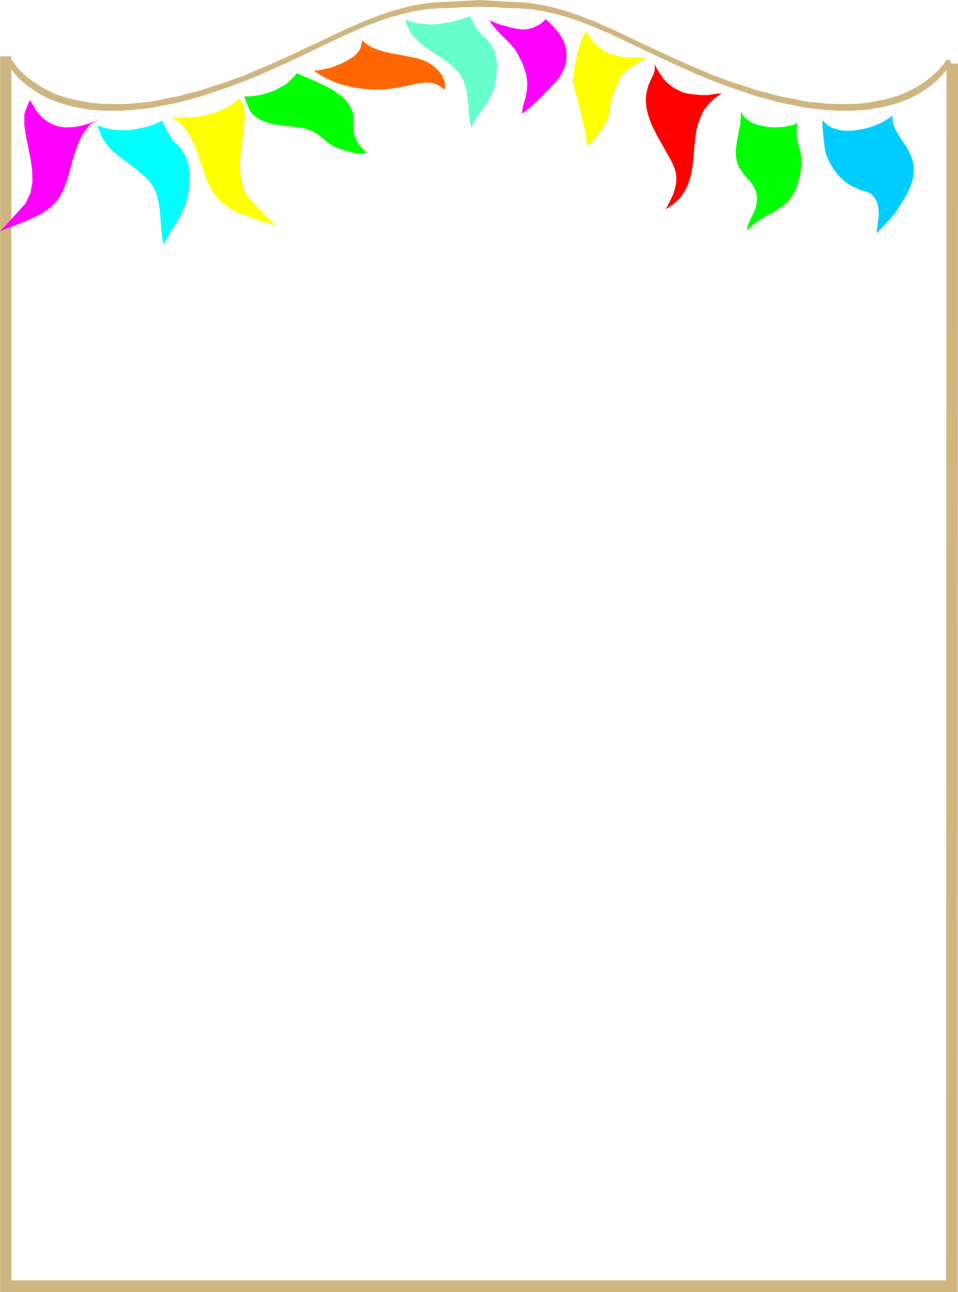 Illustration of a blank frame border with colorful pennants Free